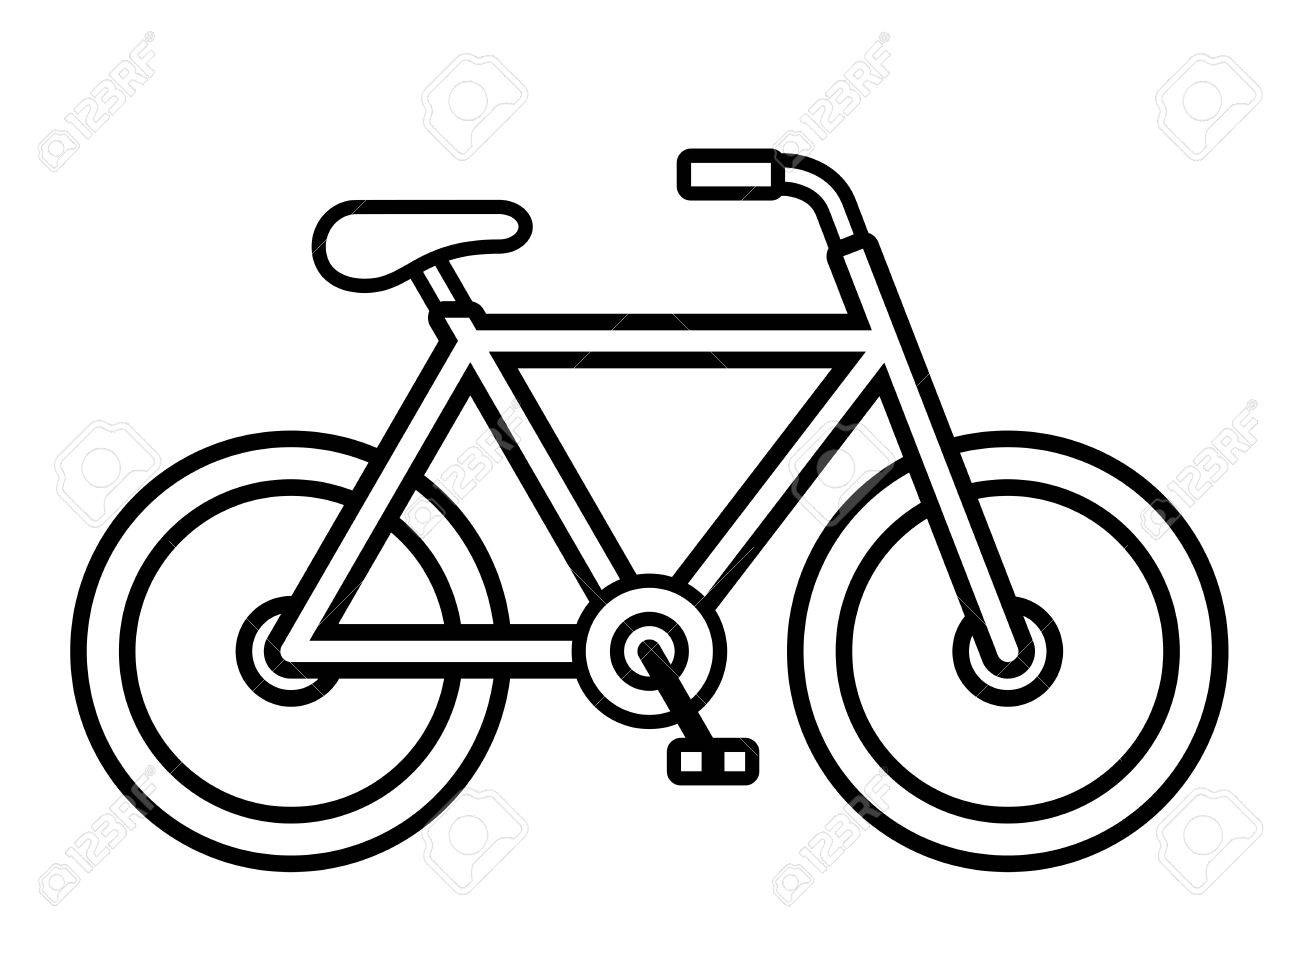 Bicycle drawing at getdrawings. Biking clipart outline